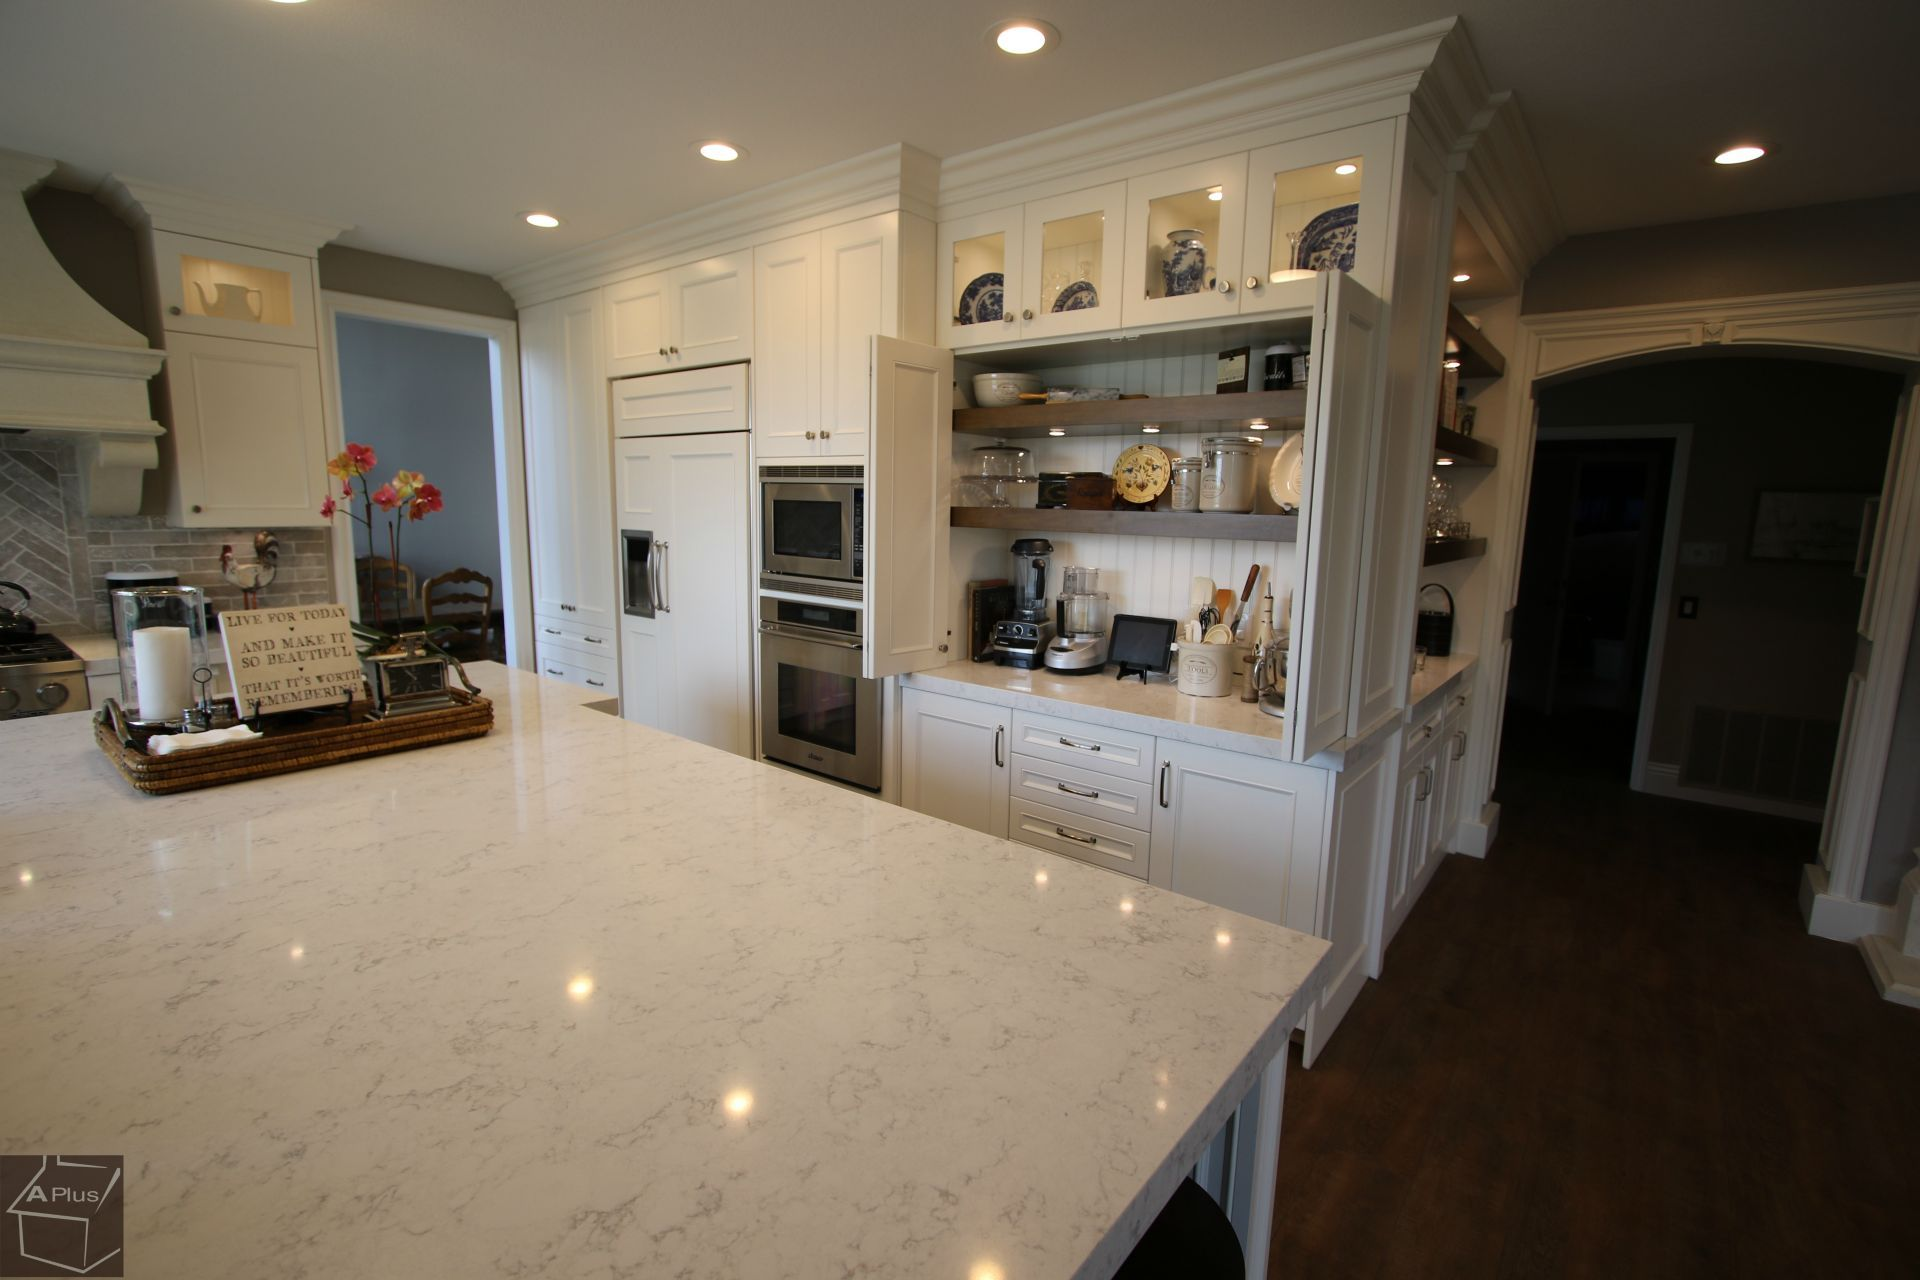 Design Build Transitional #KitchenRemodel U0026 Laundry Remodel With APlus  #Cabinets In Dove Canyon Orange